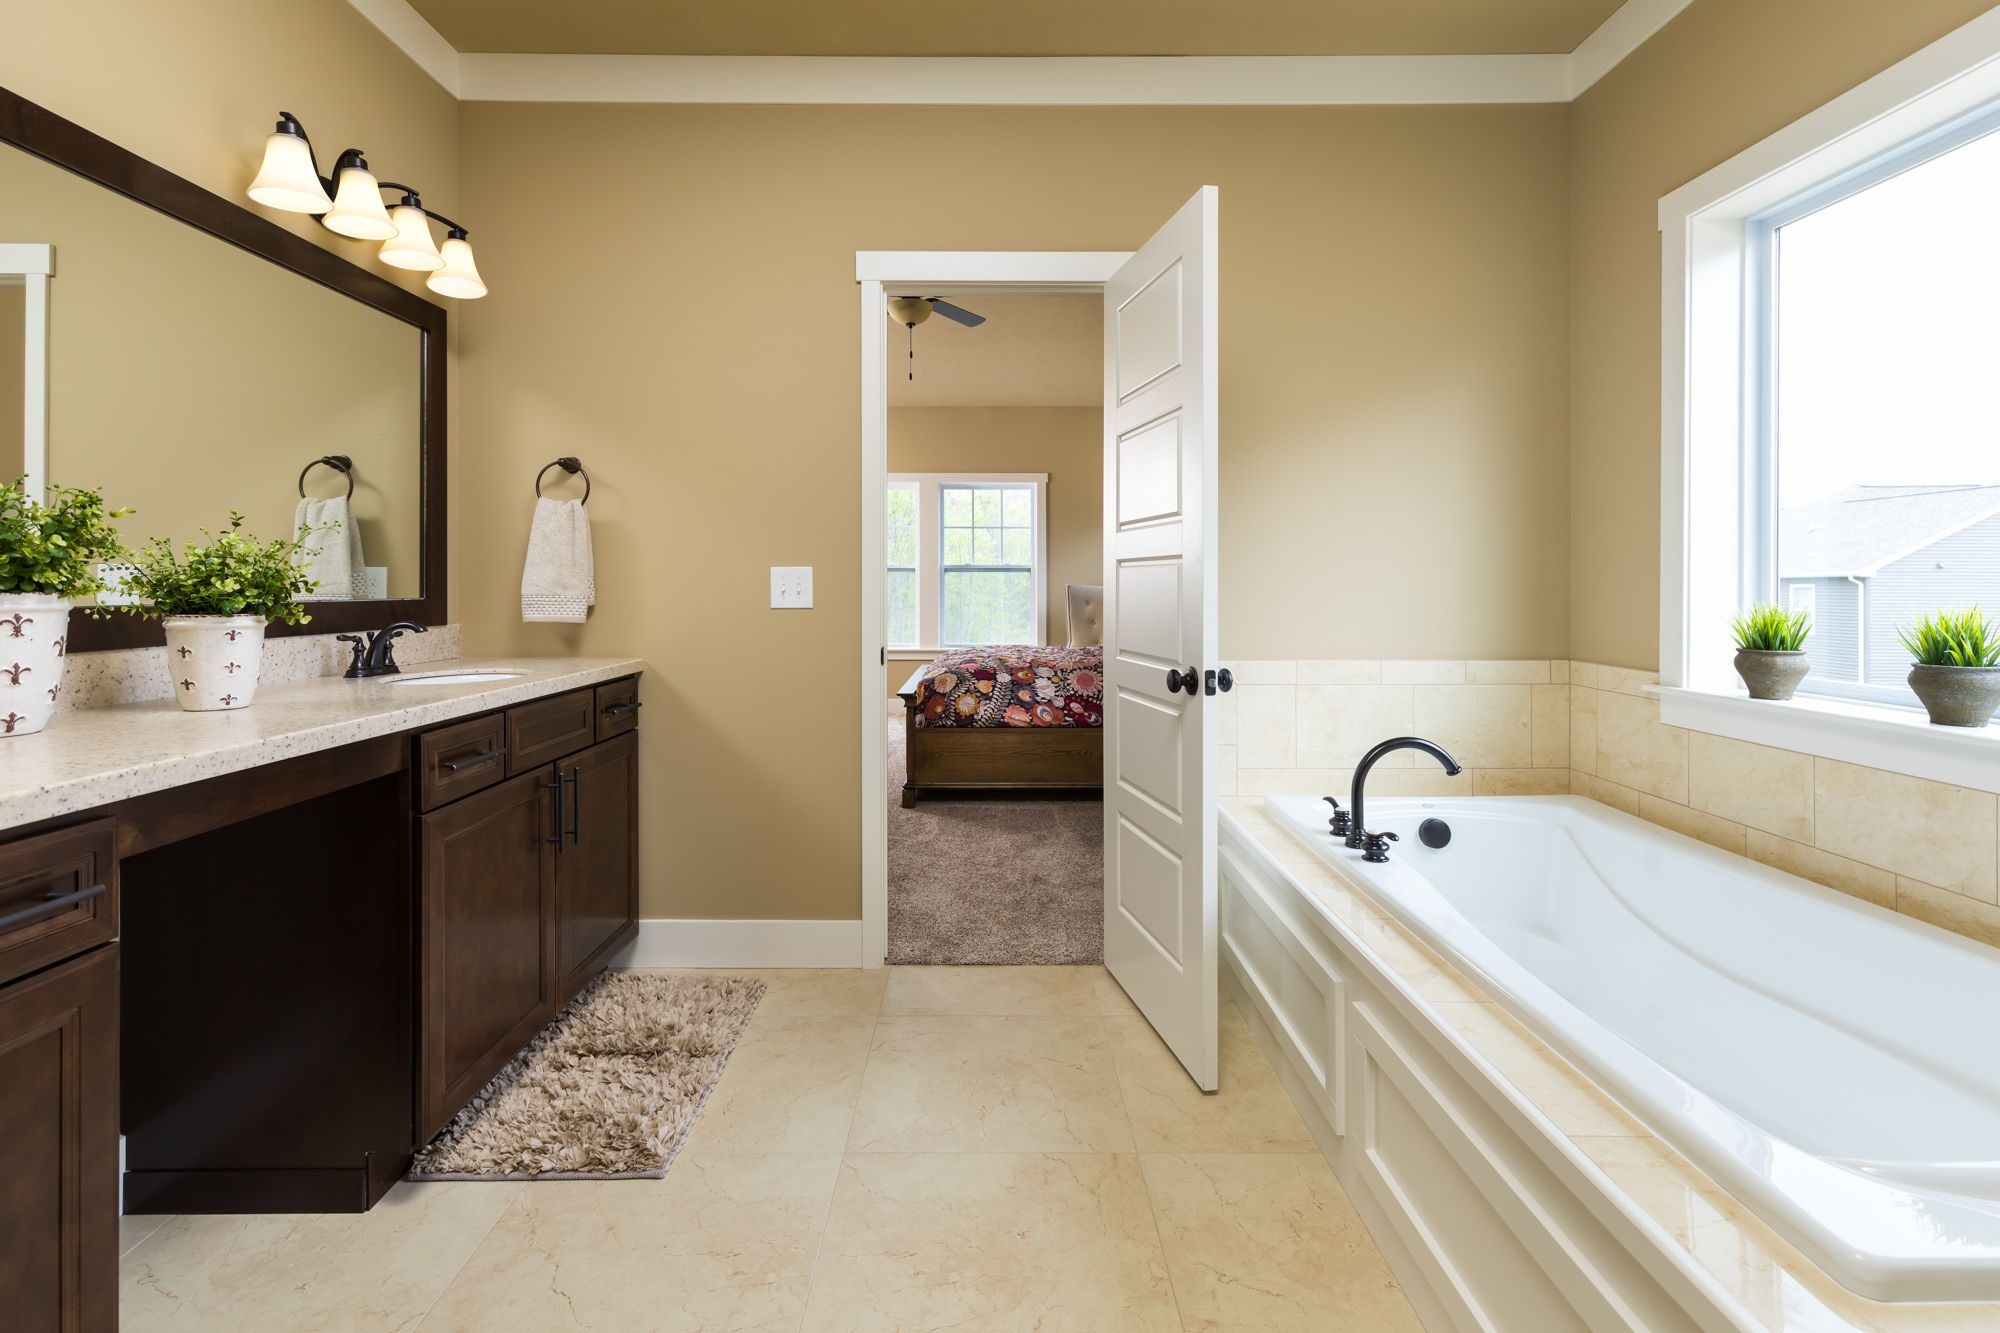 Bathroom featured in the Traditions 2900 V8.2b By Allen Edwin Homes in Ann Arbor, MI